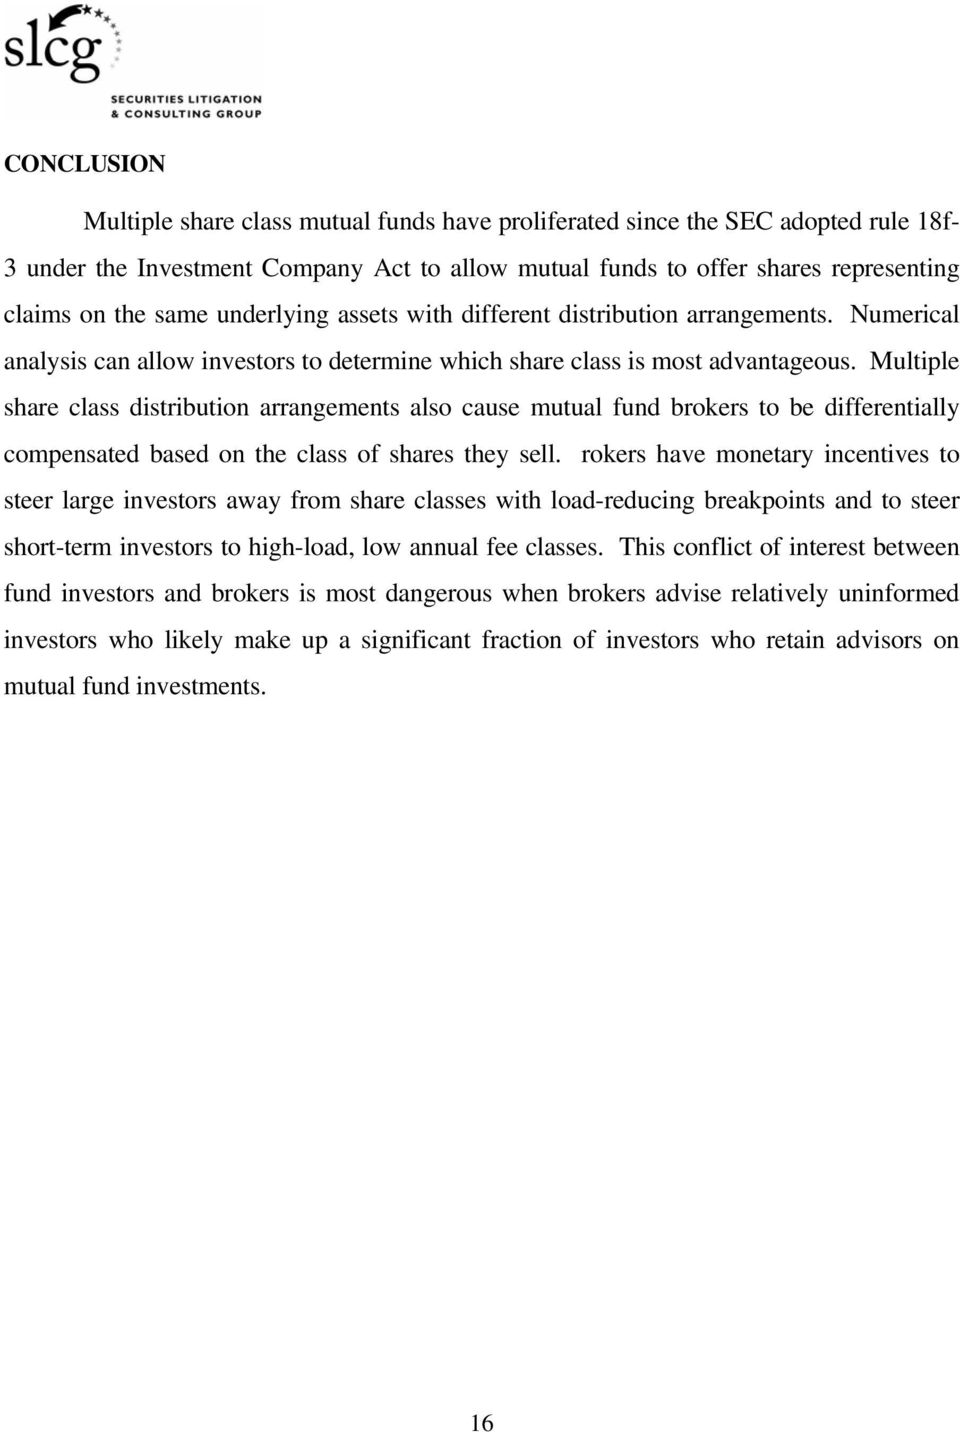 Multiple share class distribution arrangements also cause mutual fund brokers to be differentially compensated based on the class of shares they sell.